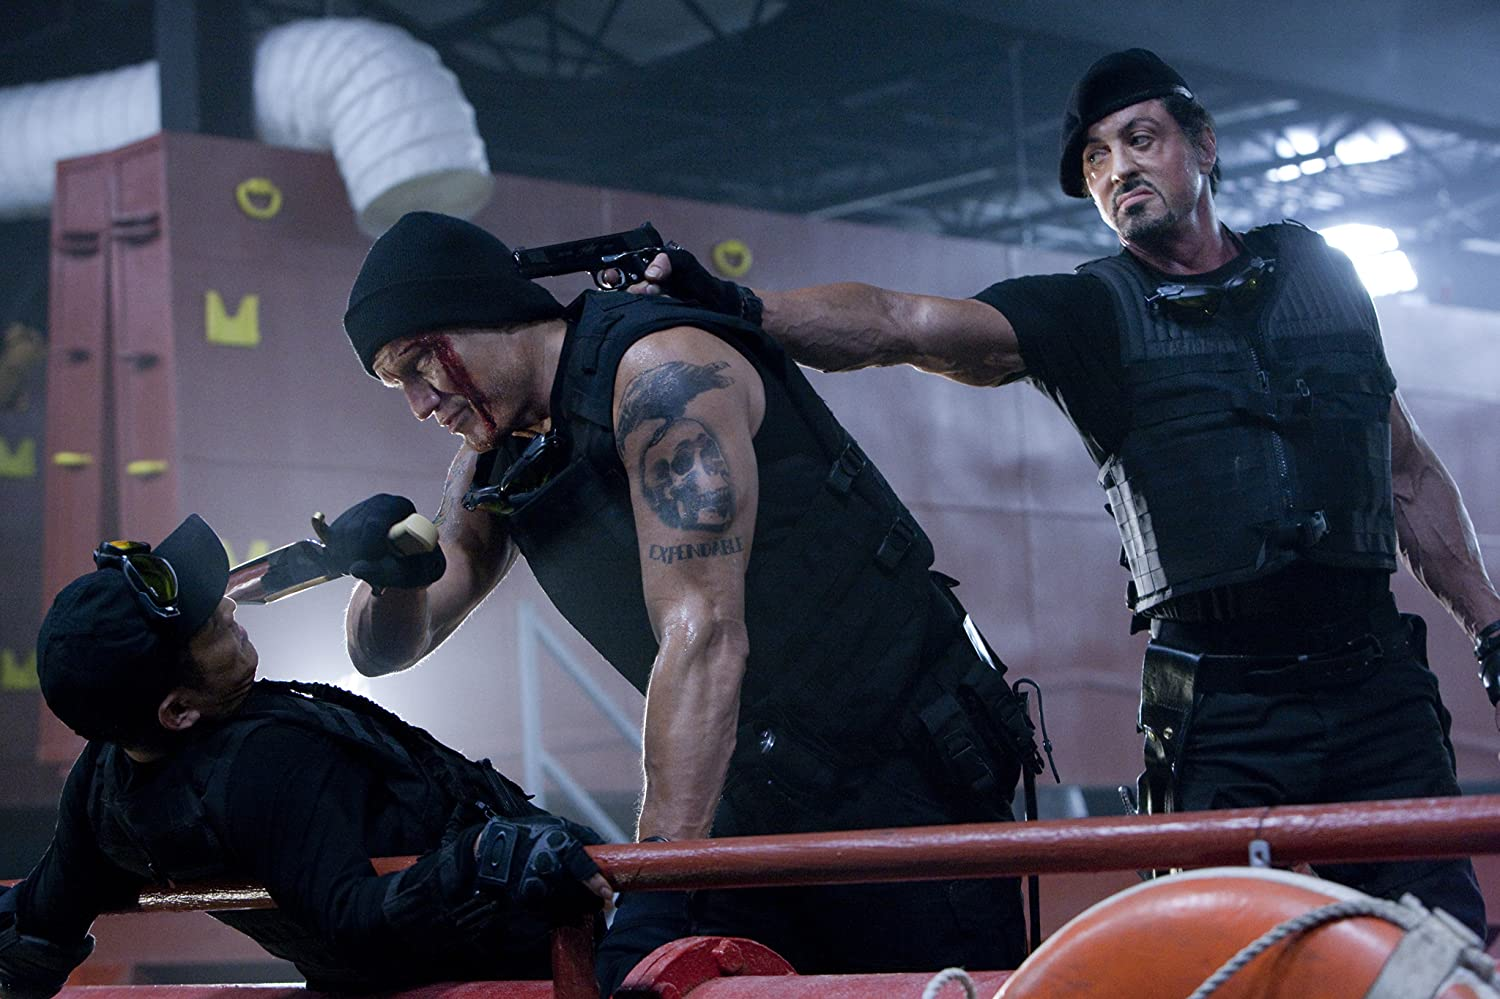 Dolph Lundgren, Sylvester Stallone, and Jet Li in The Expendables (2010)